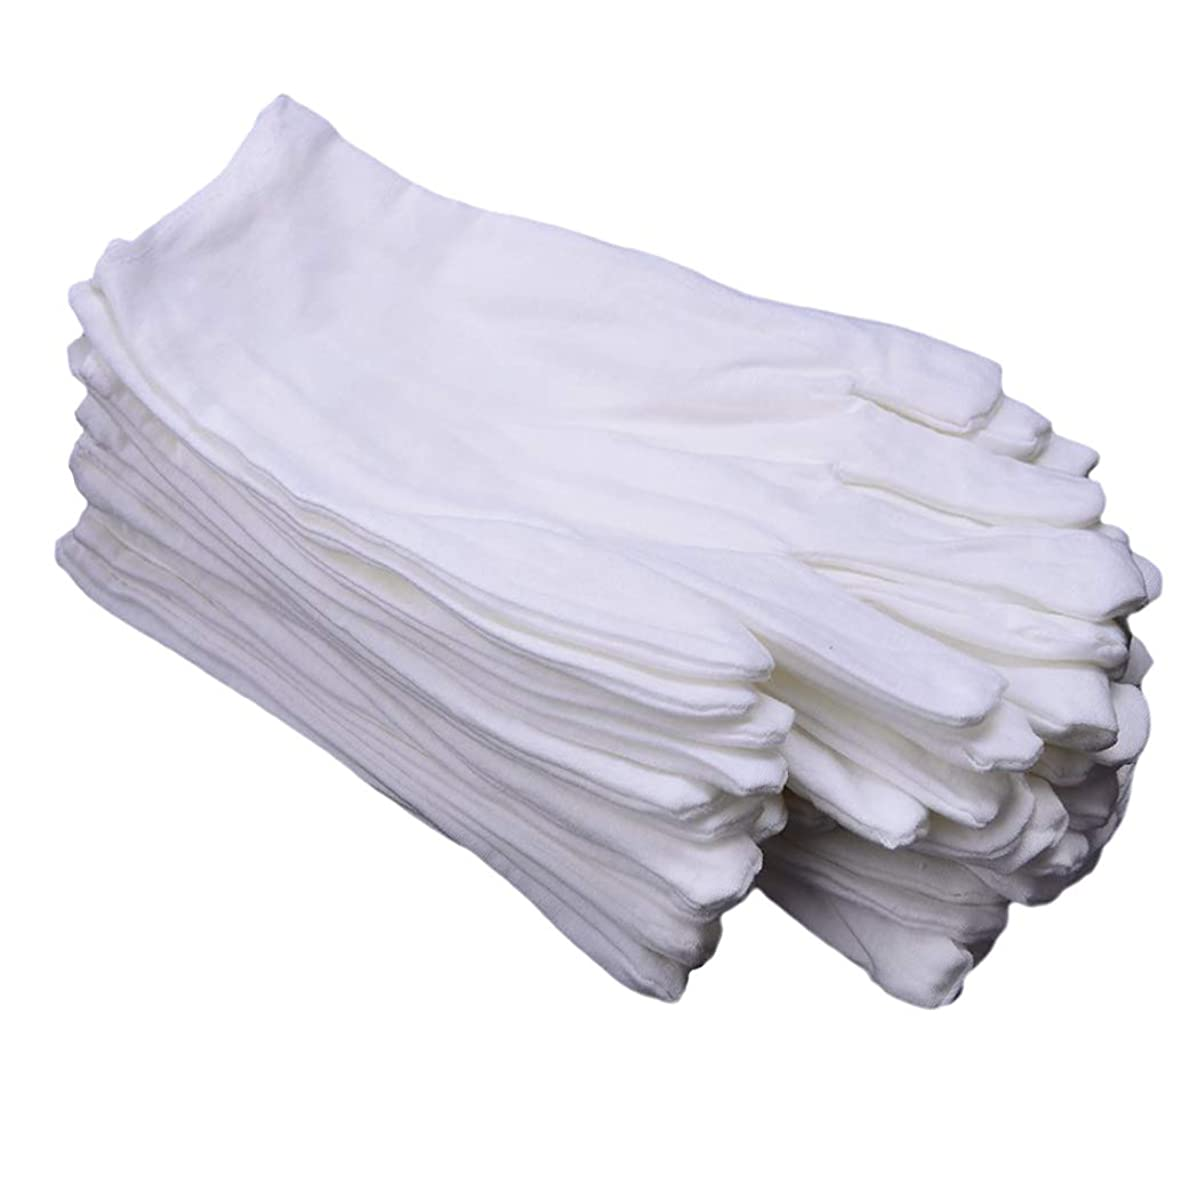 CTKcom 6 Pairs White Soft 100% Cotton Gloves,Large Size for Work/Lining Glove,Coin Jewelry Silver Inspection Gloves(6 Pairs)